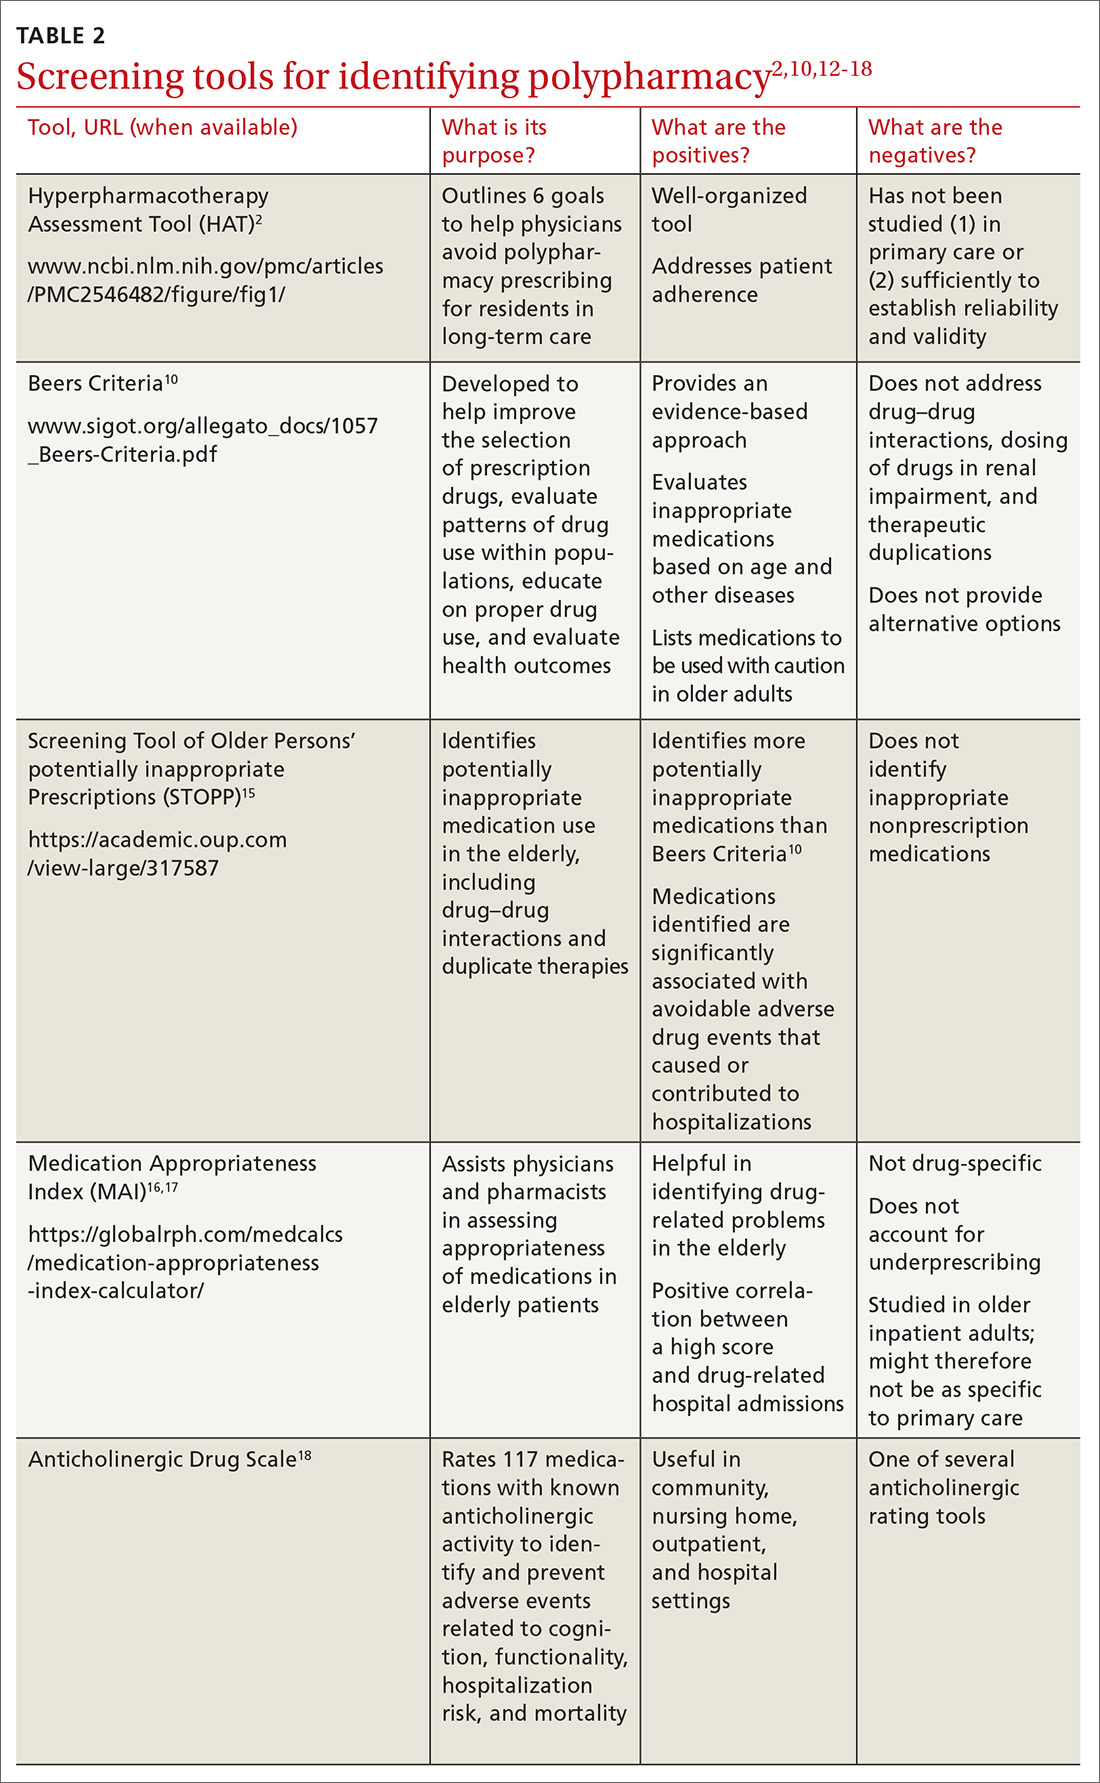 Screening tools for identifying polypharmacy